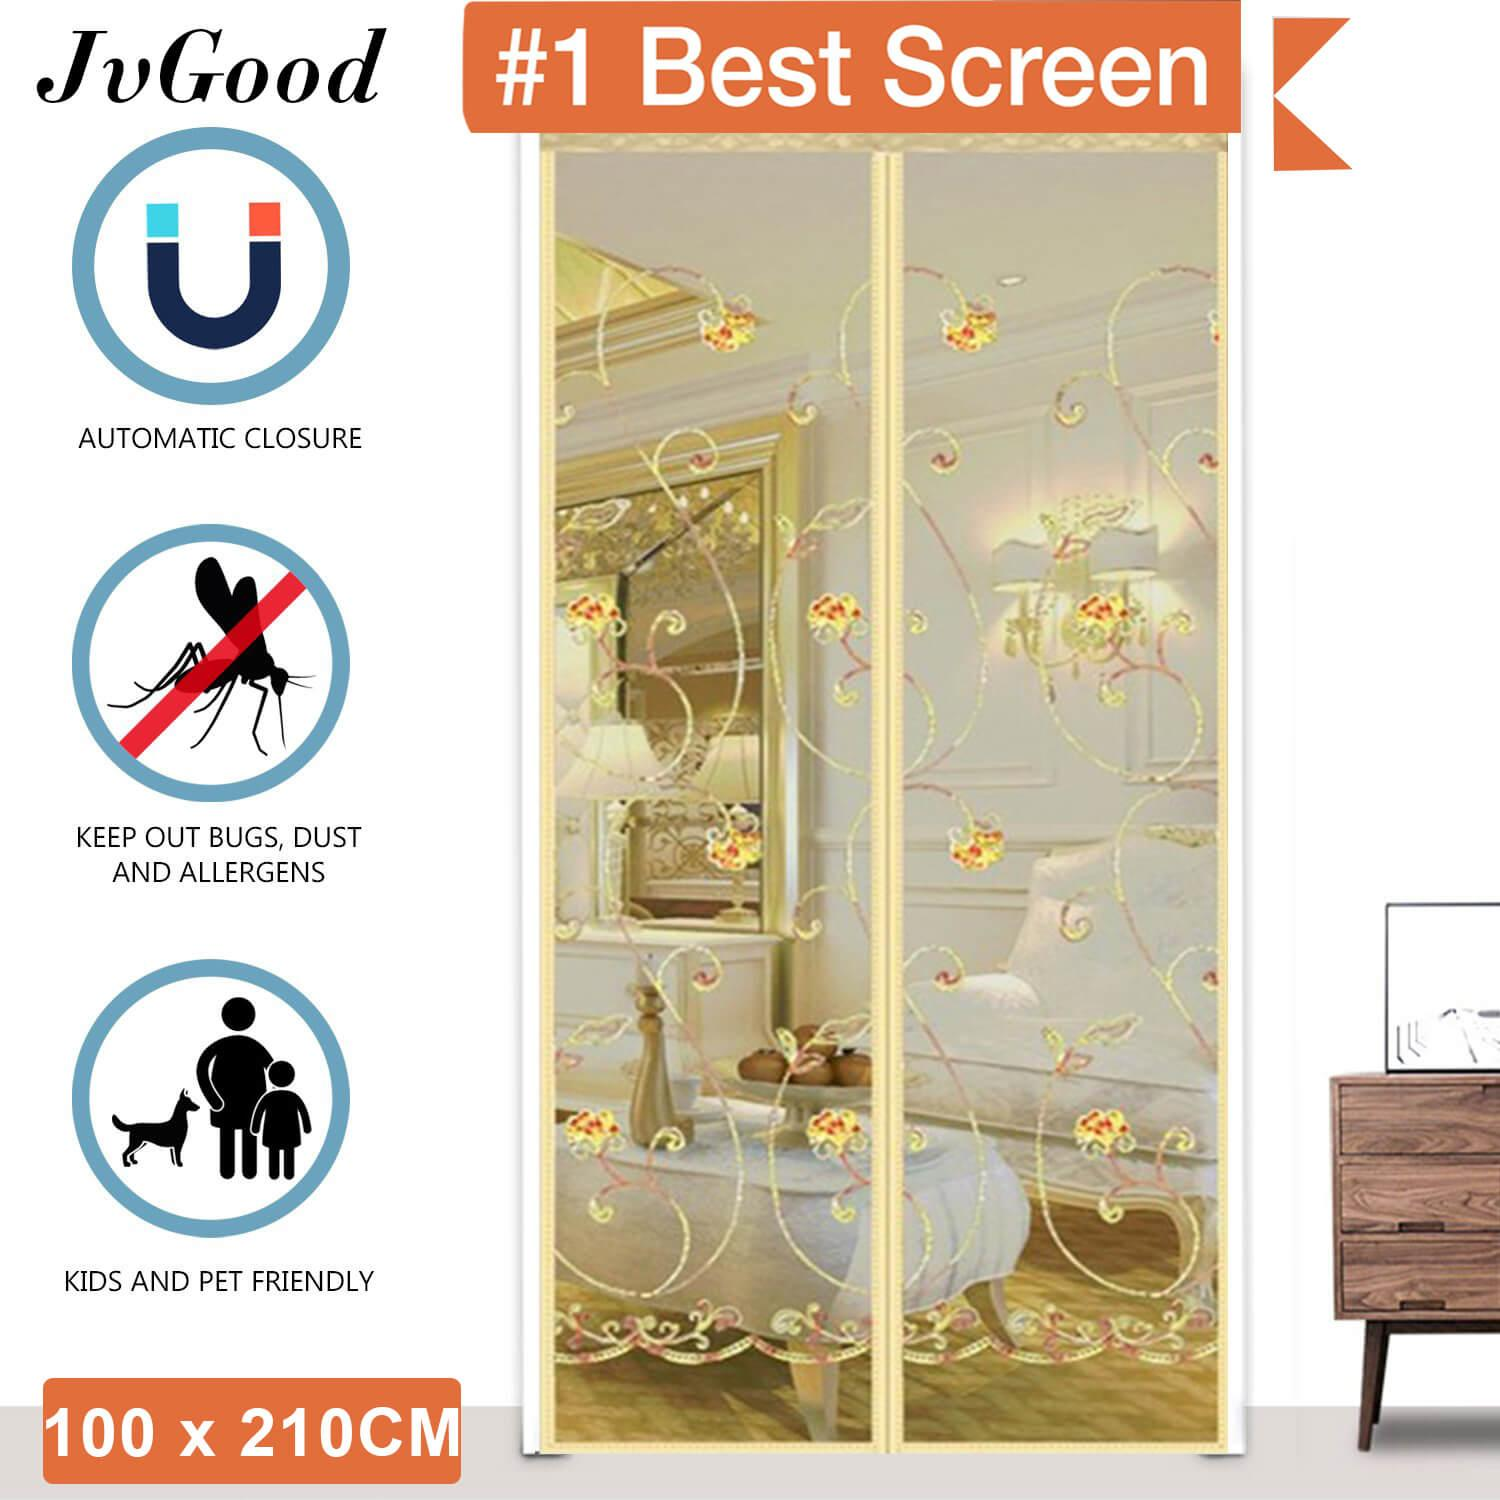 """JvGood Magnetic Screen Door with Heavy Duty Mesh Curtain Full Frame Velcro Mosquito Door Curtain Hand Free Close Open Automatically Bugs Off Pets Friendly Fit Door (100 x 210cm/39 x 83"""")"""